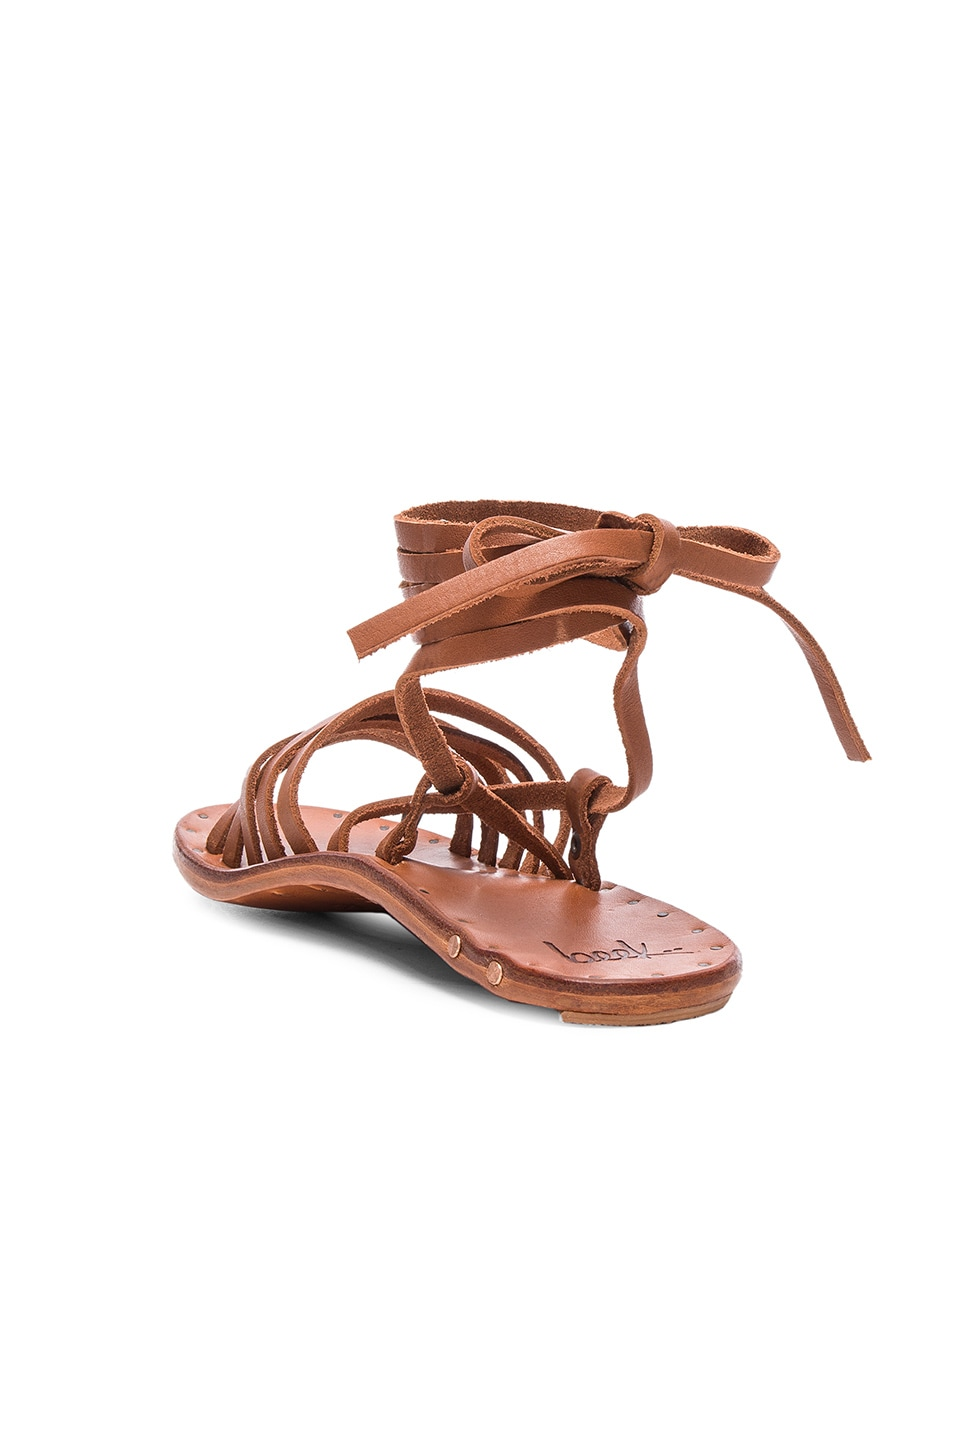 1690068a67c Image 3 of Beek Leather Heron Sandals in Tan